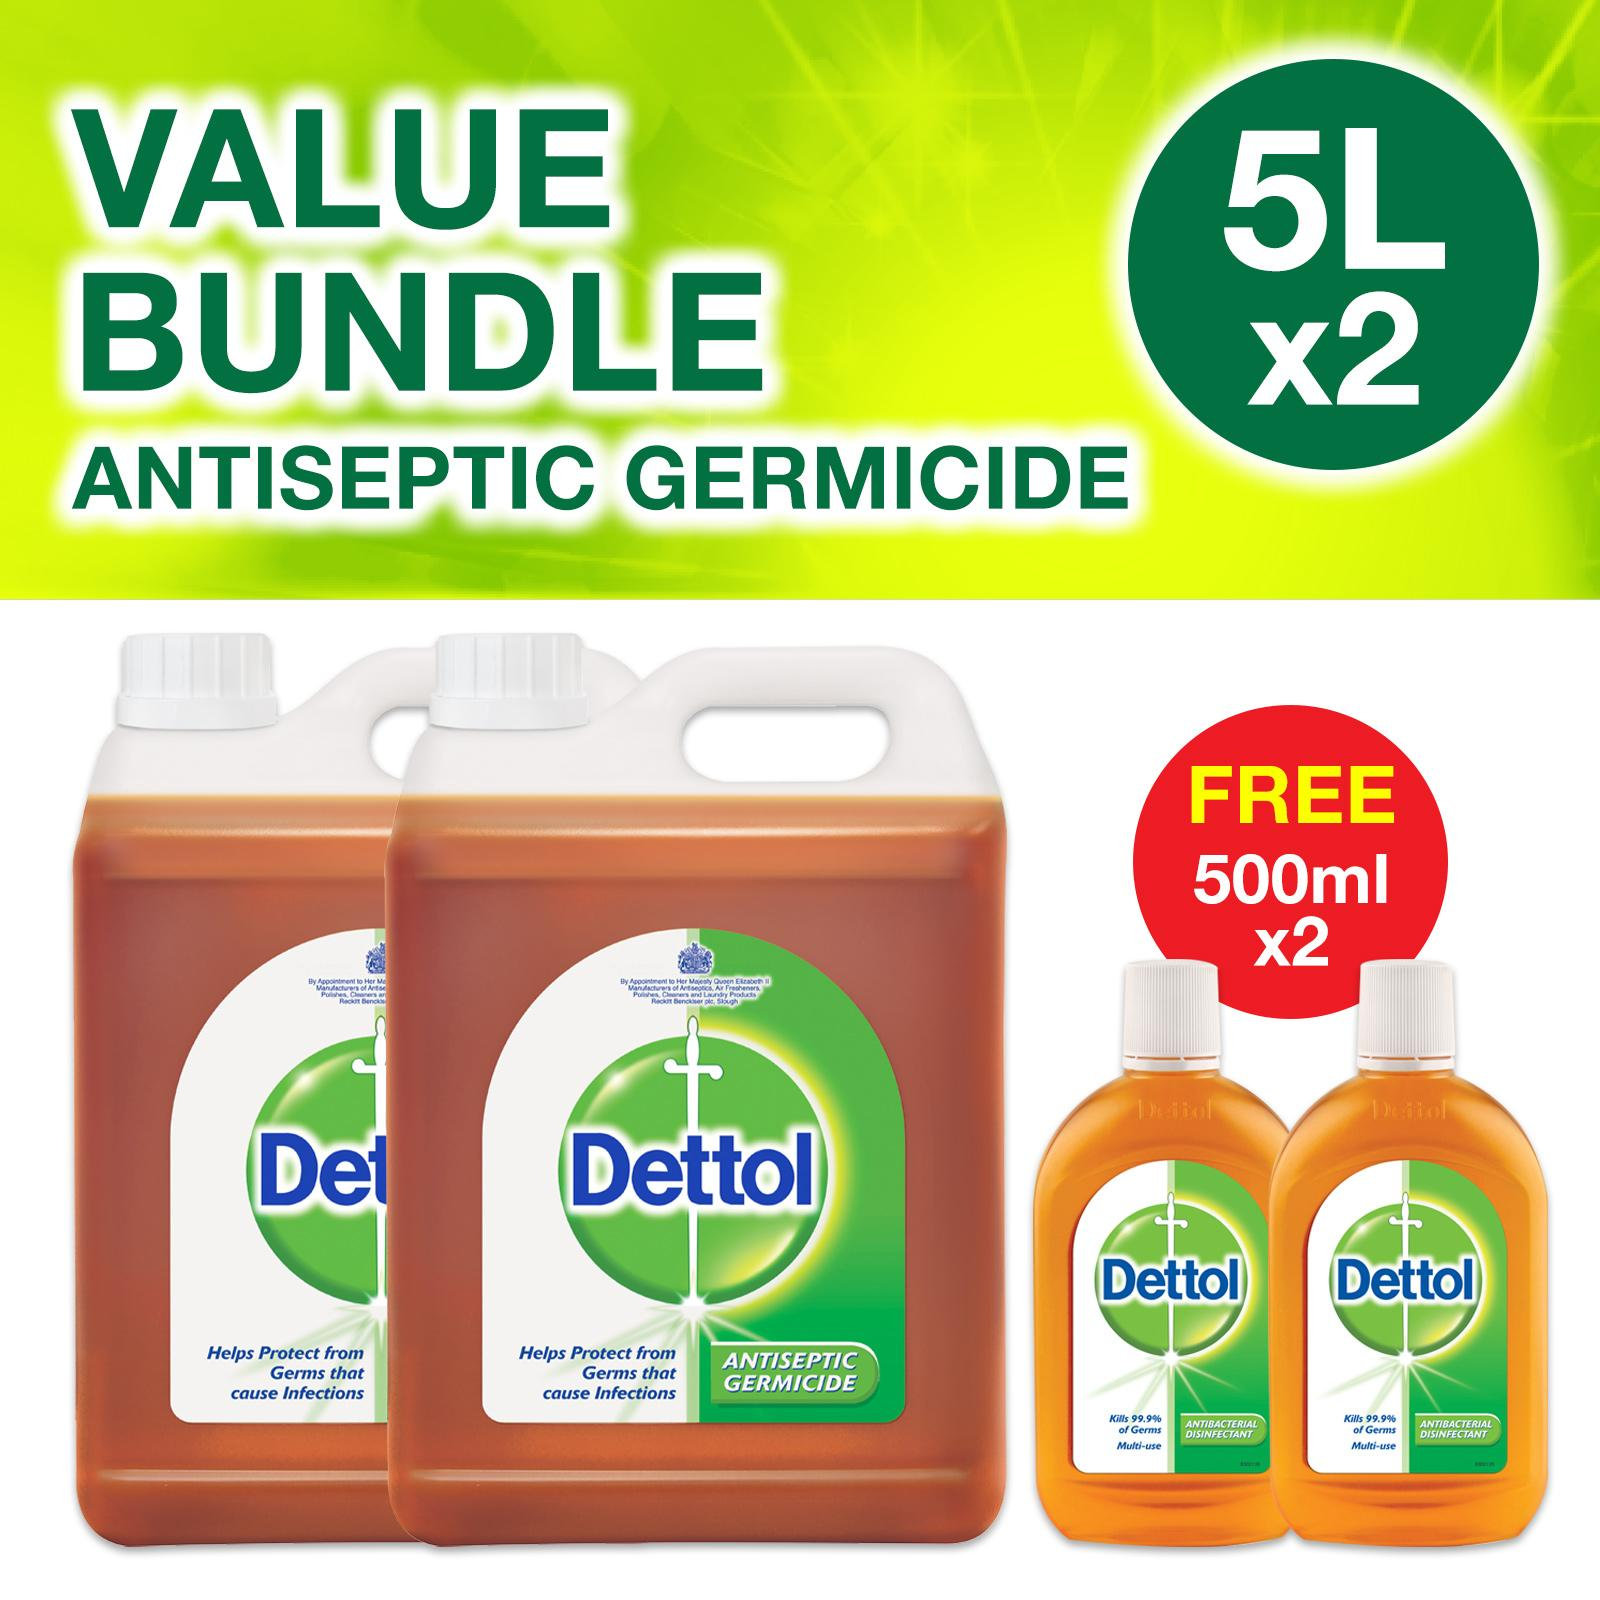 2 X Dettol Antiseptic Germicide 5l + 2 X Free 500ml By Dettol.